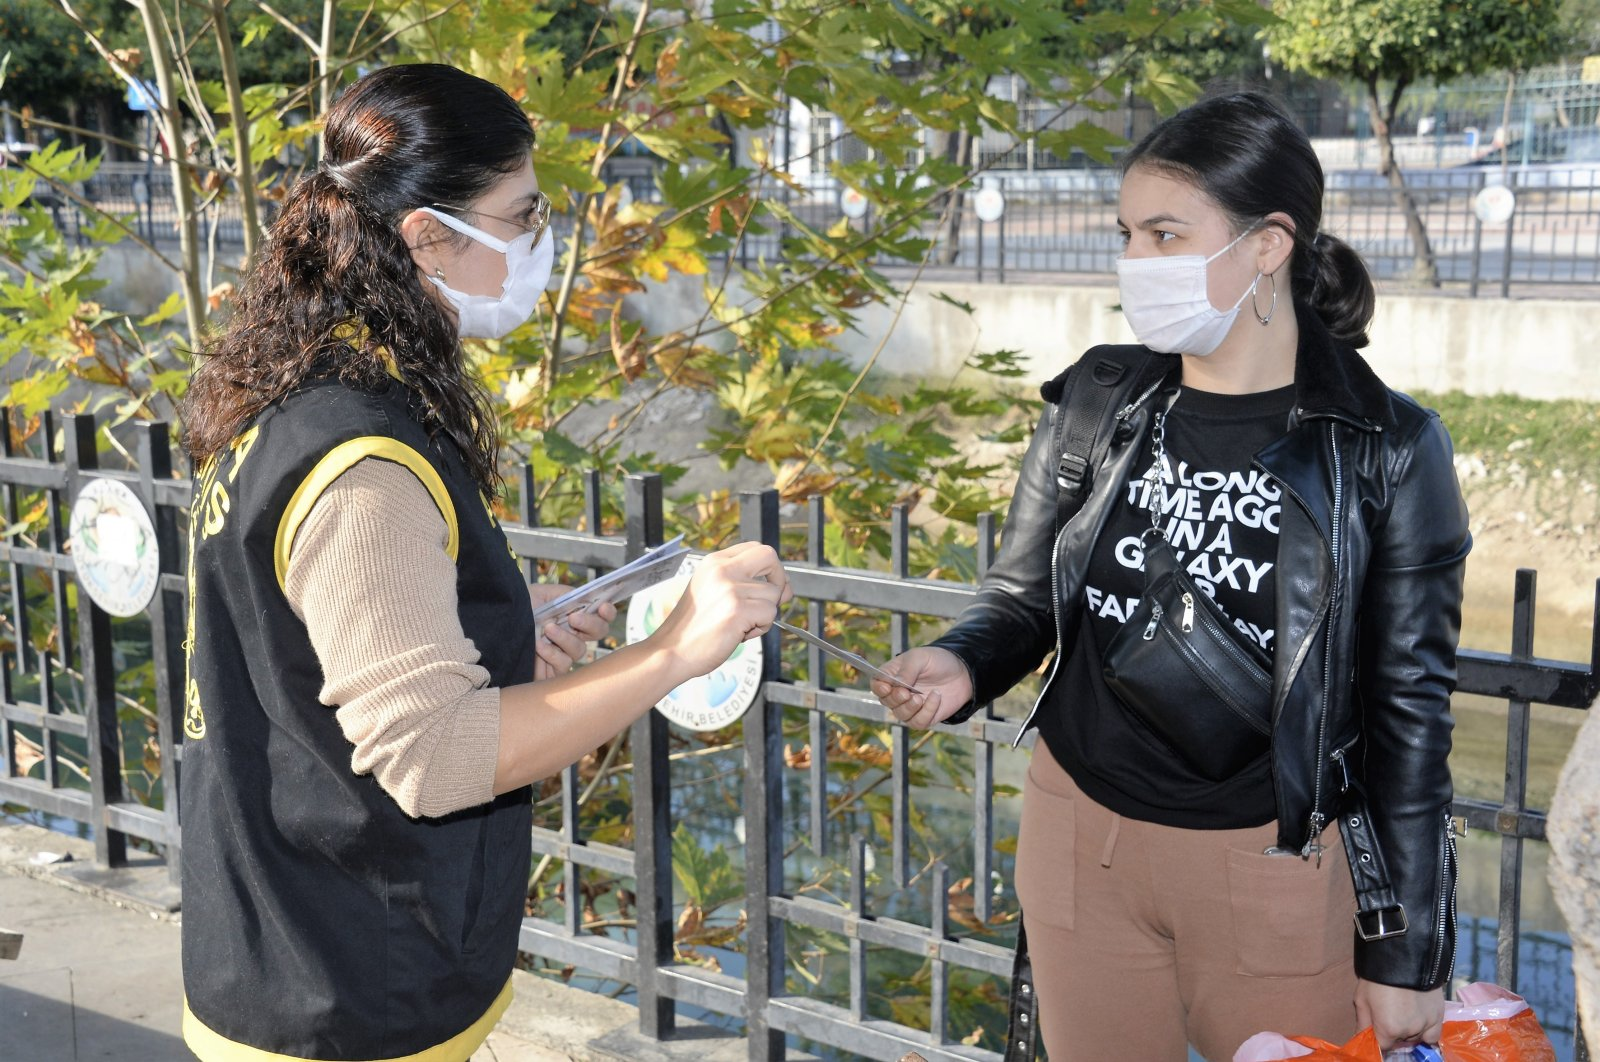 A police officer distributes leaflets on domestic violence to a woman, in Adana, southern Turkey, Dec. 16, 2020. (IHA Photo)